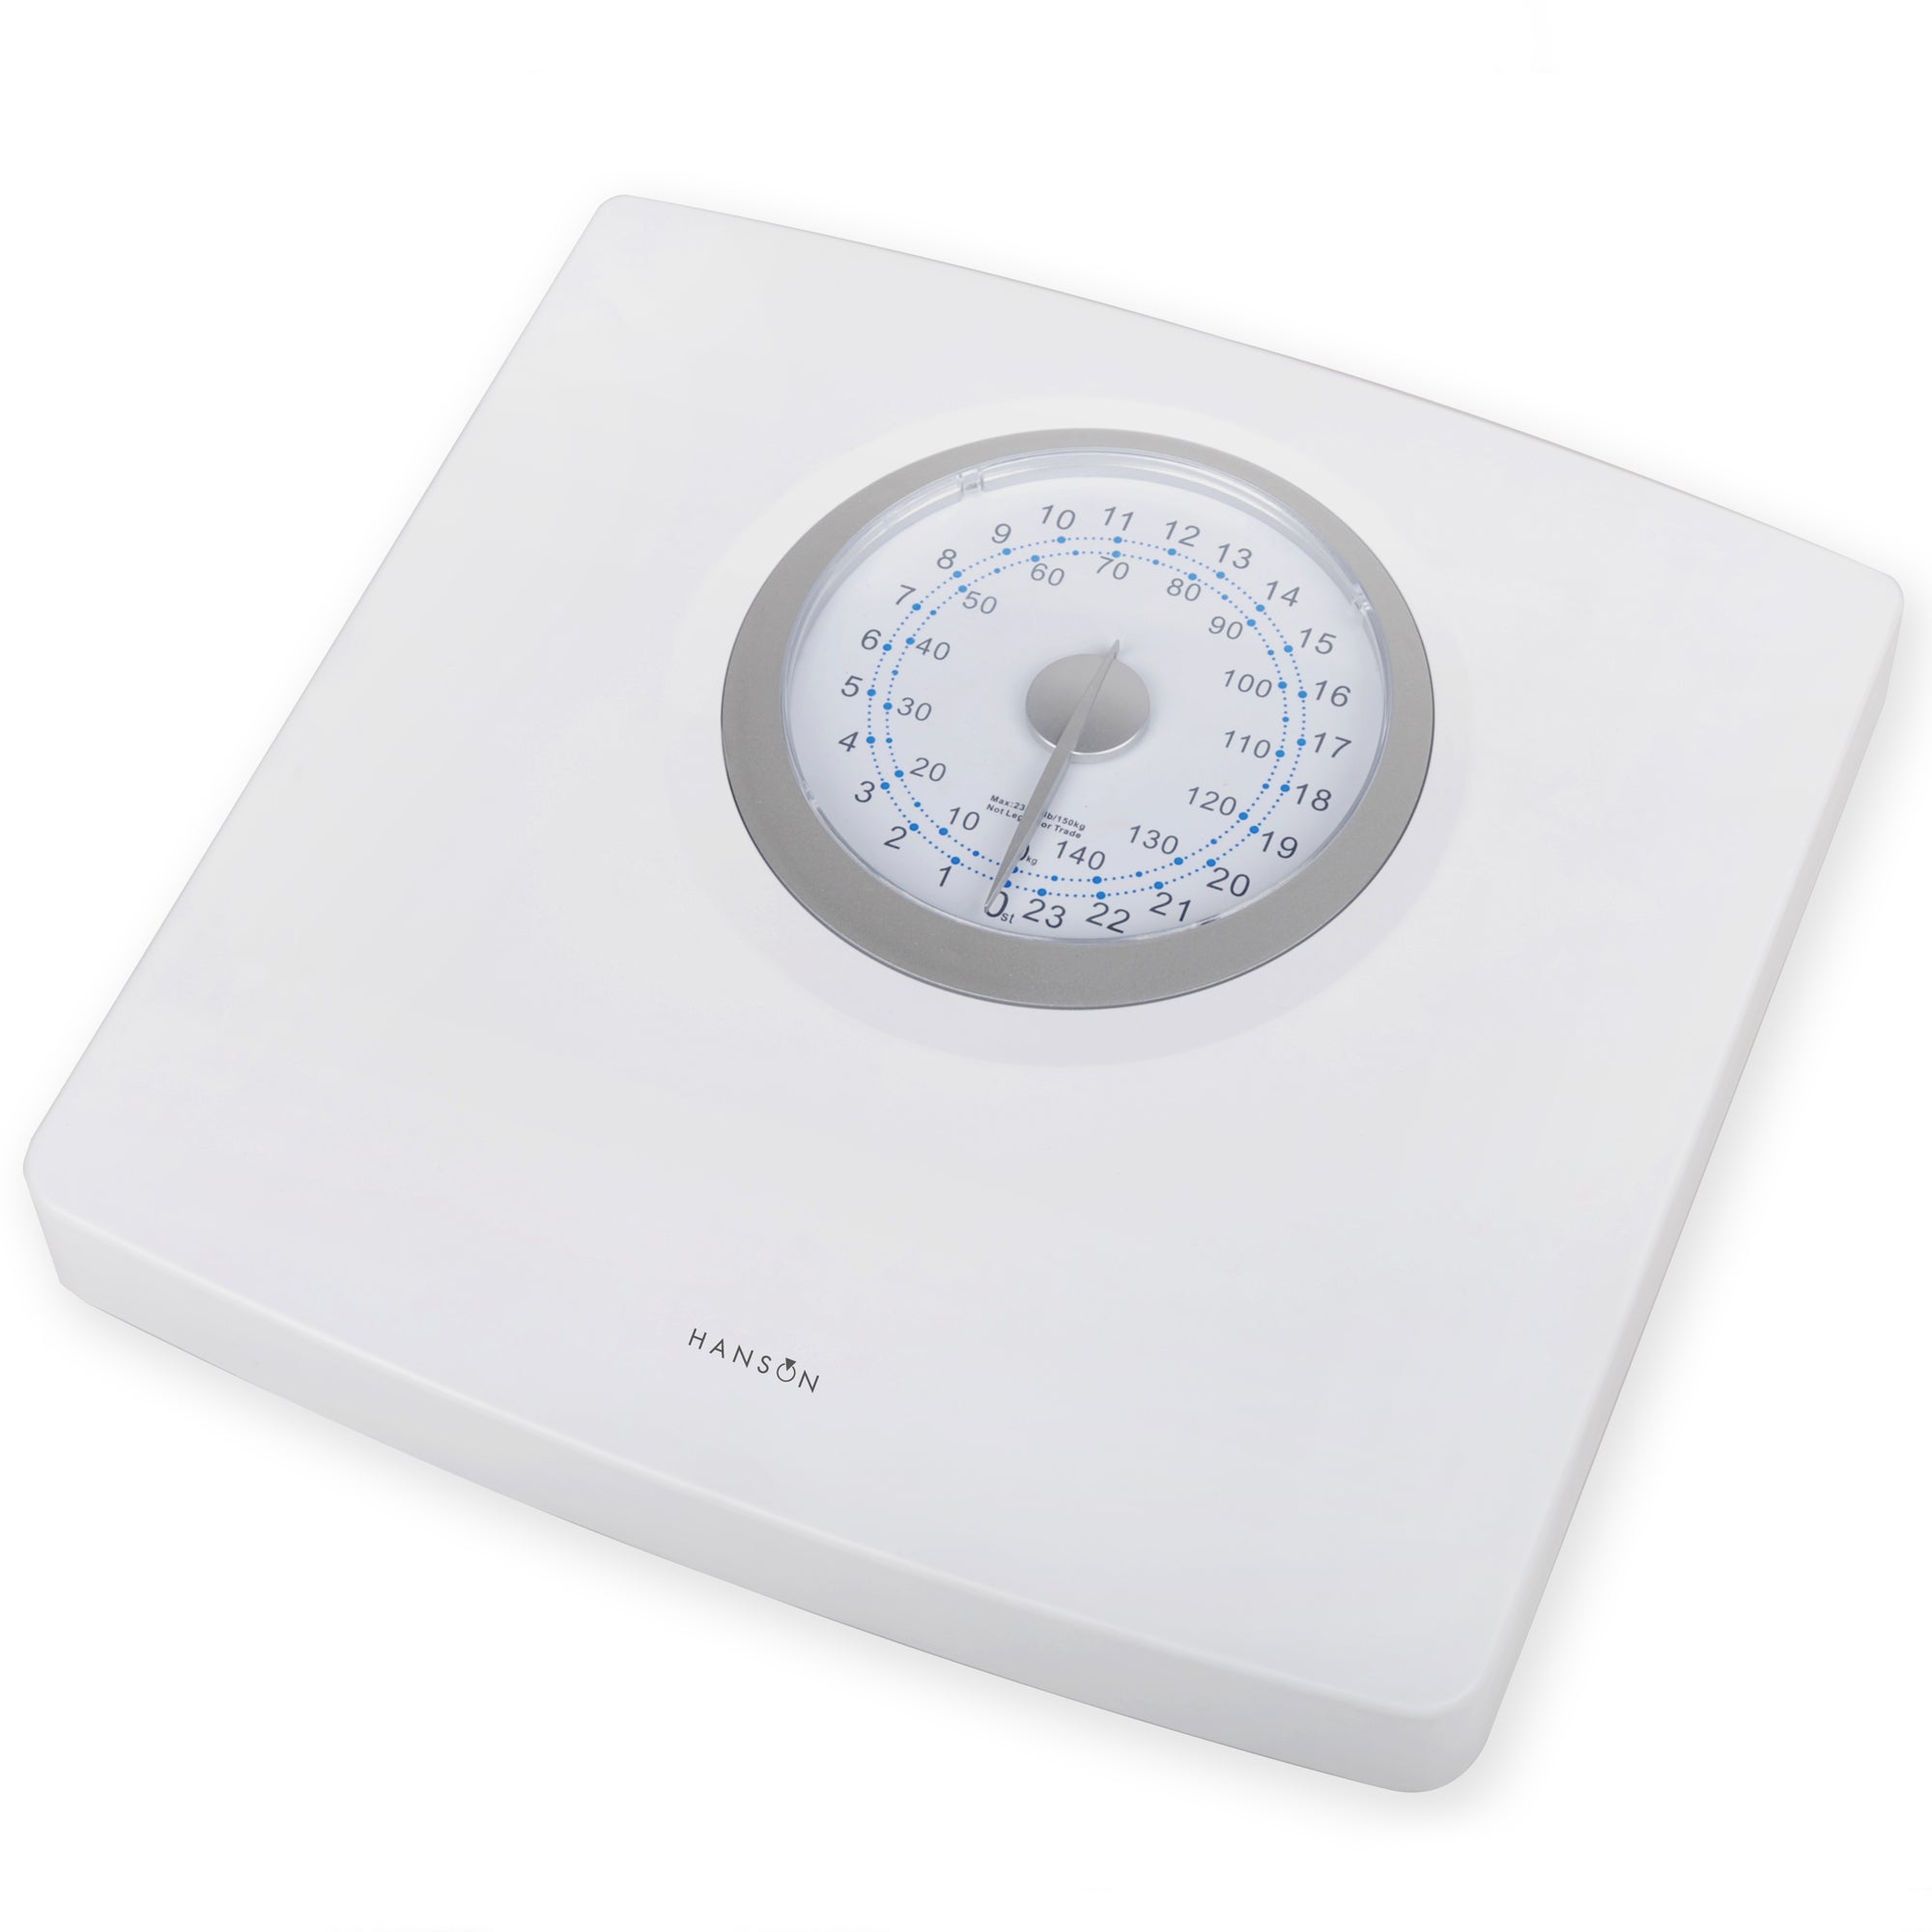 Hanson H100 Mechanical Bathroom Scale